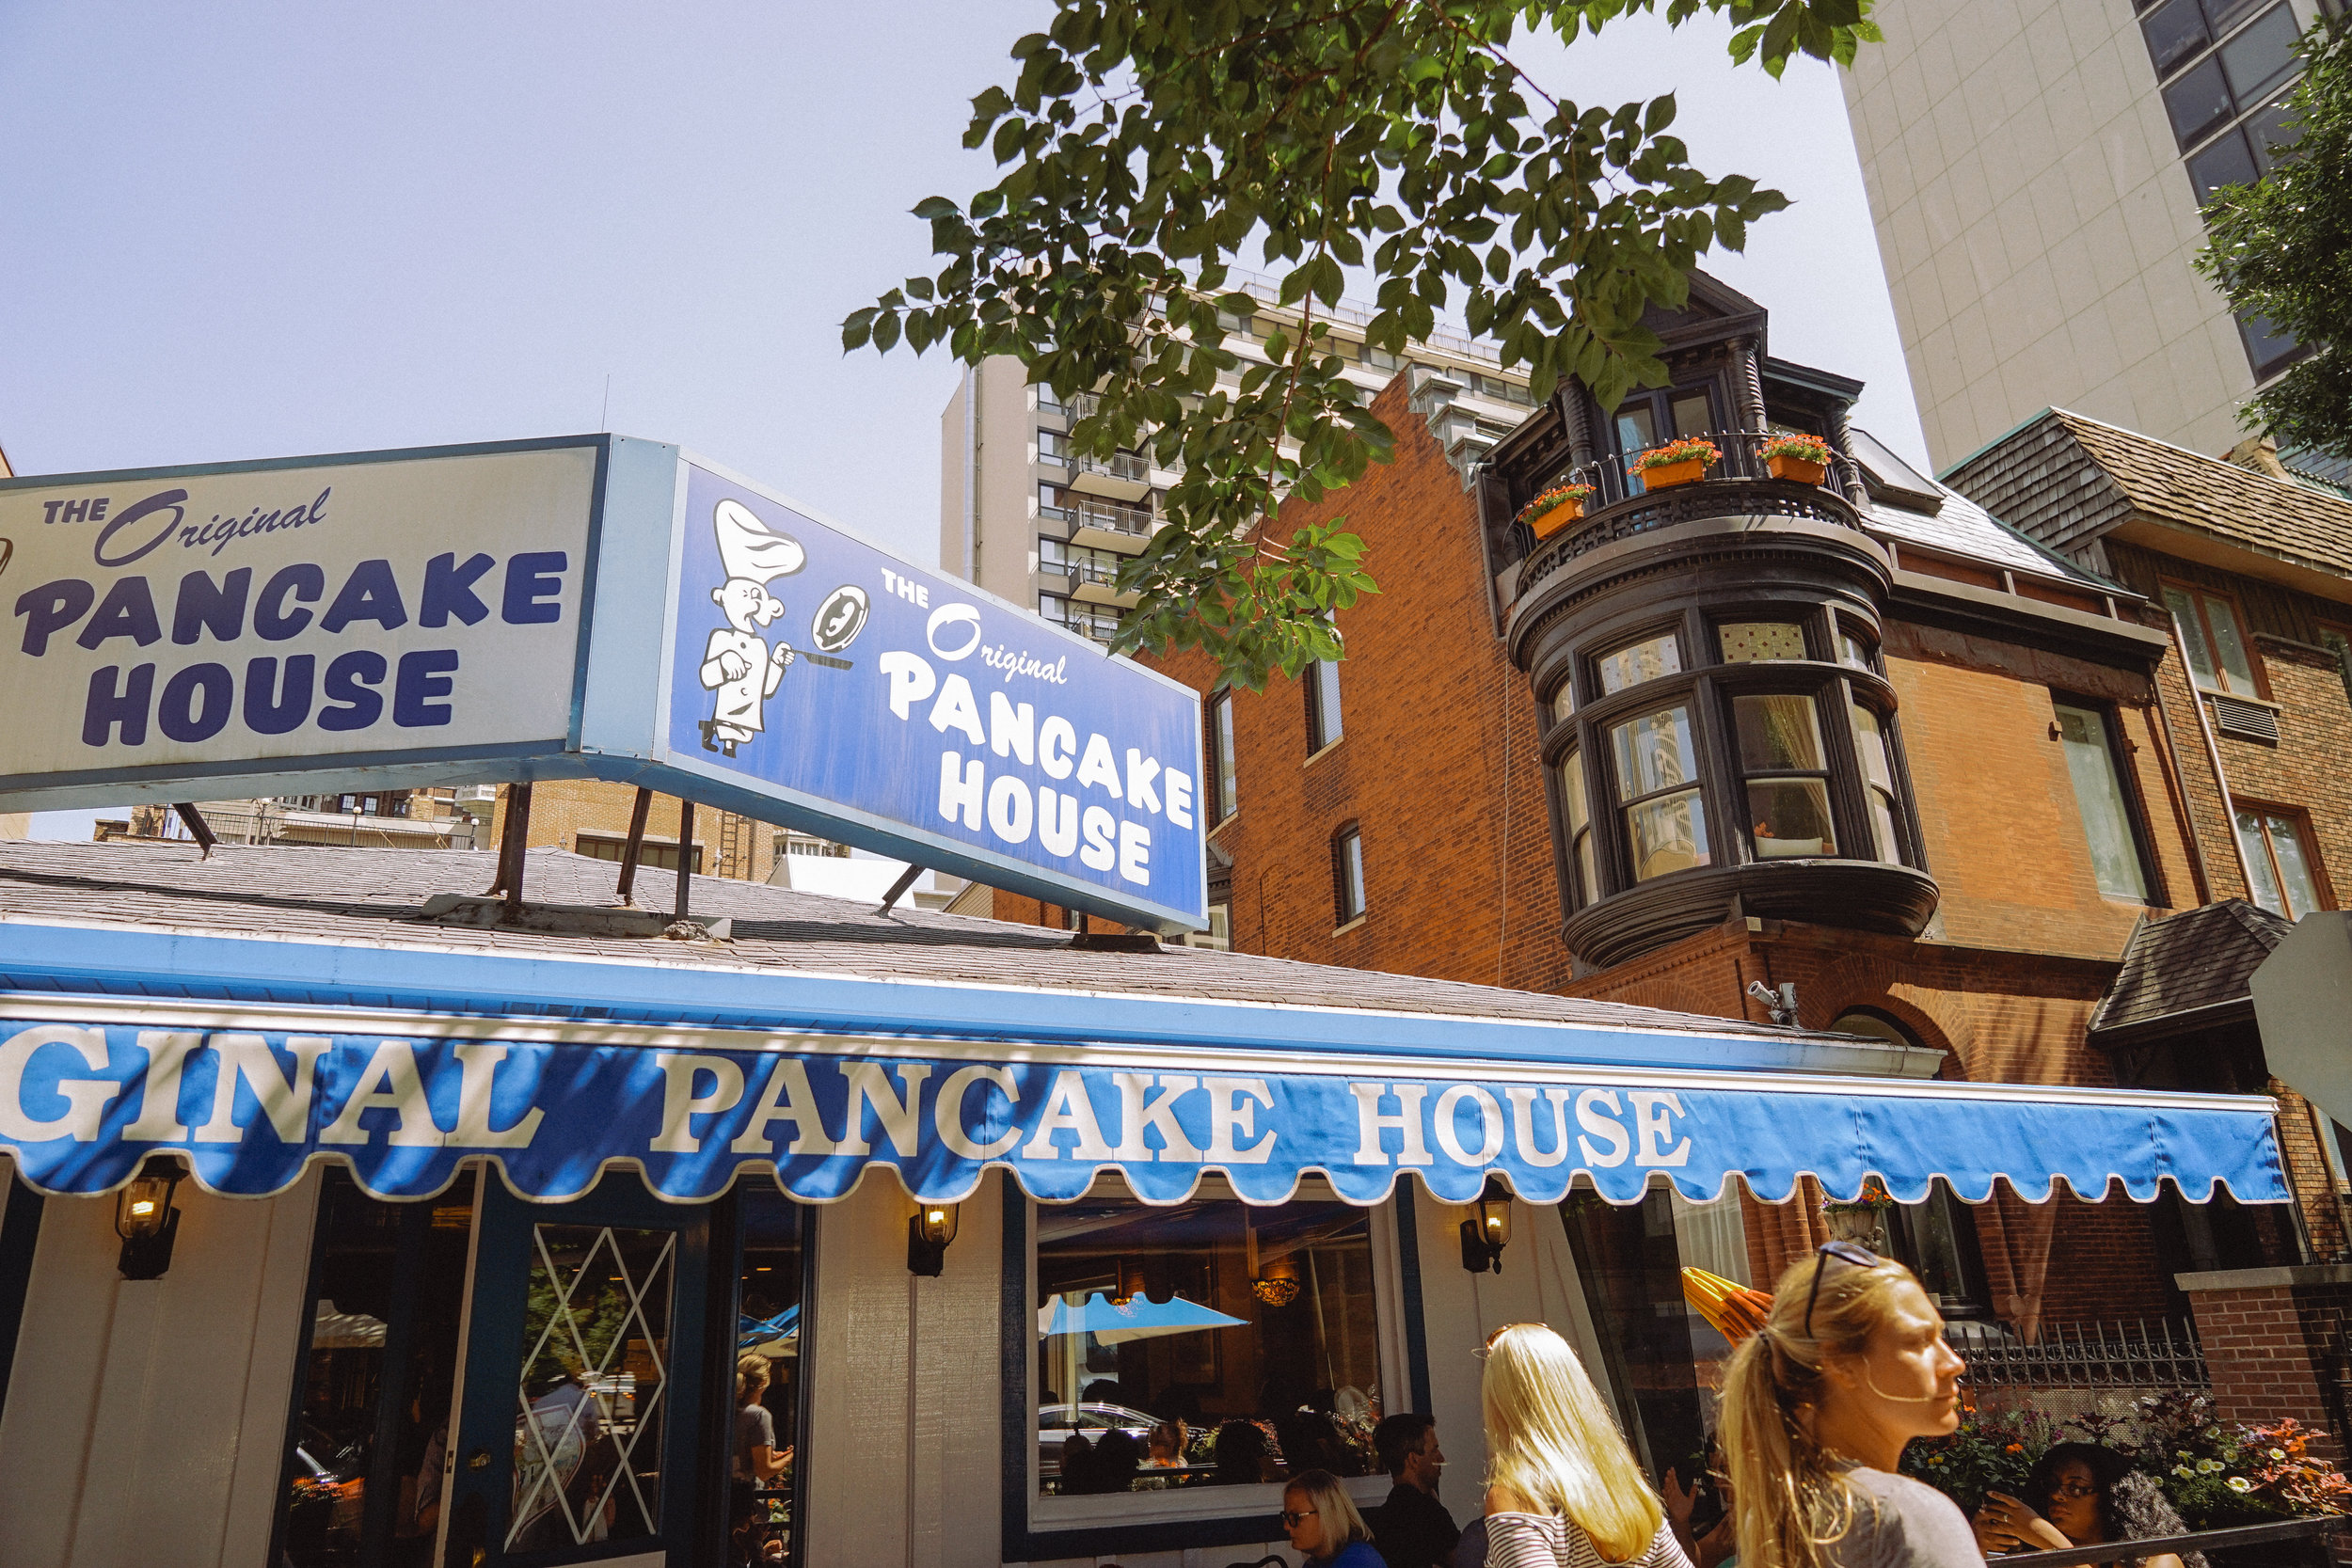 The Original Pancake House in Chicago